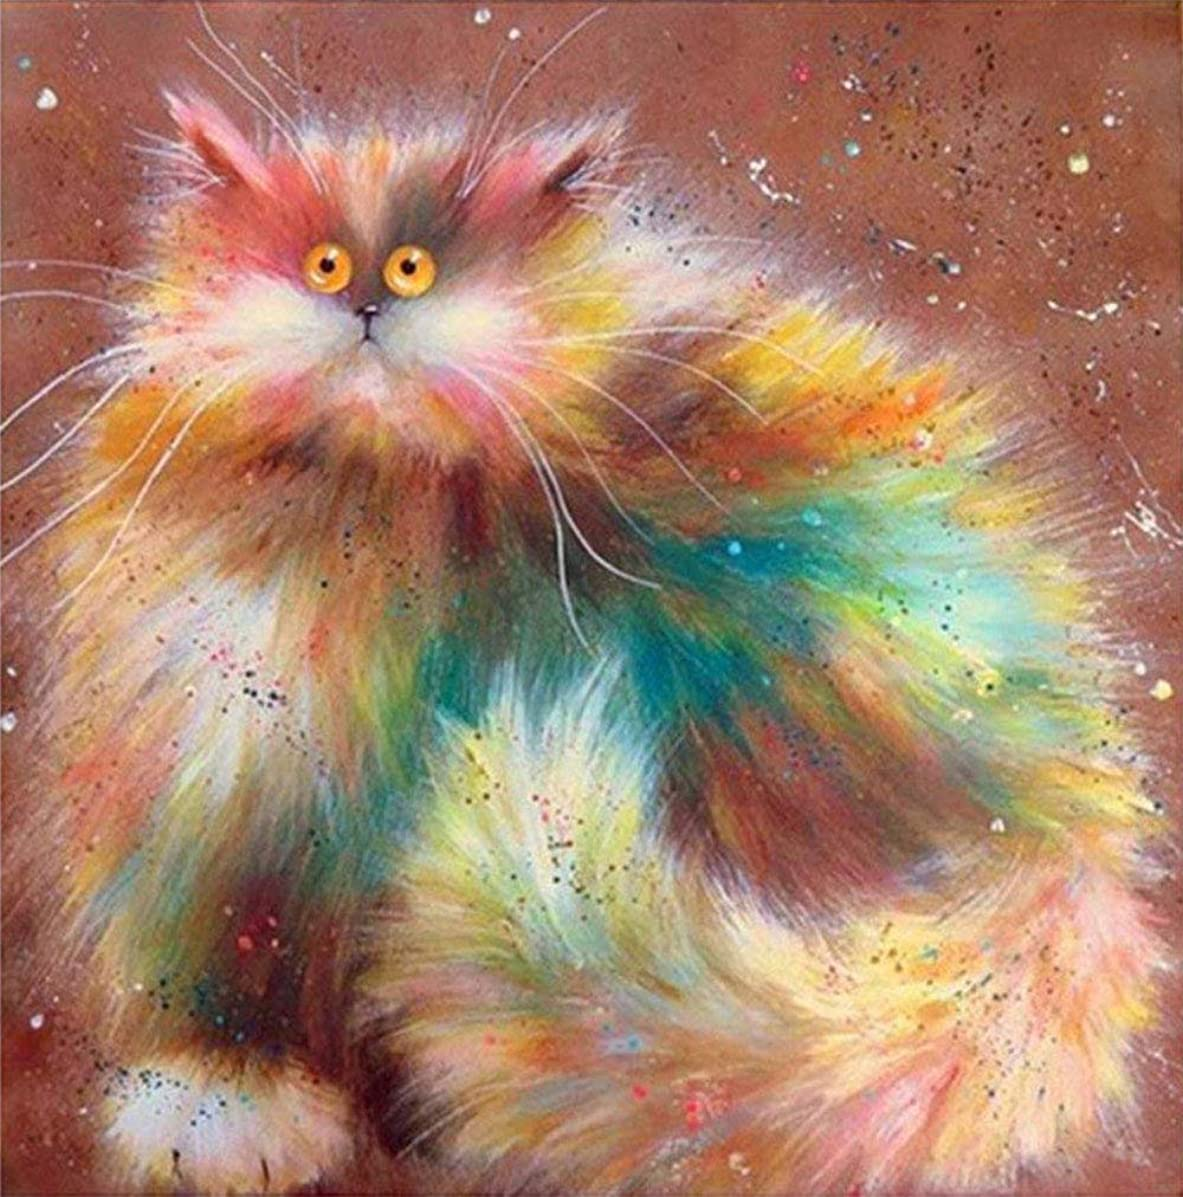 Twelve Dollar Shop DIY 5D Diamond Painting by Number Kits, Crystal Rhinestone Diamond Embroidery Paintings Pictures Arts Craft for Home Wall Decor, Full Drill,Pussycat